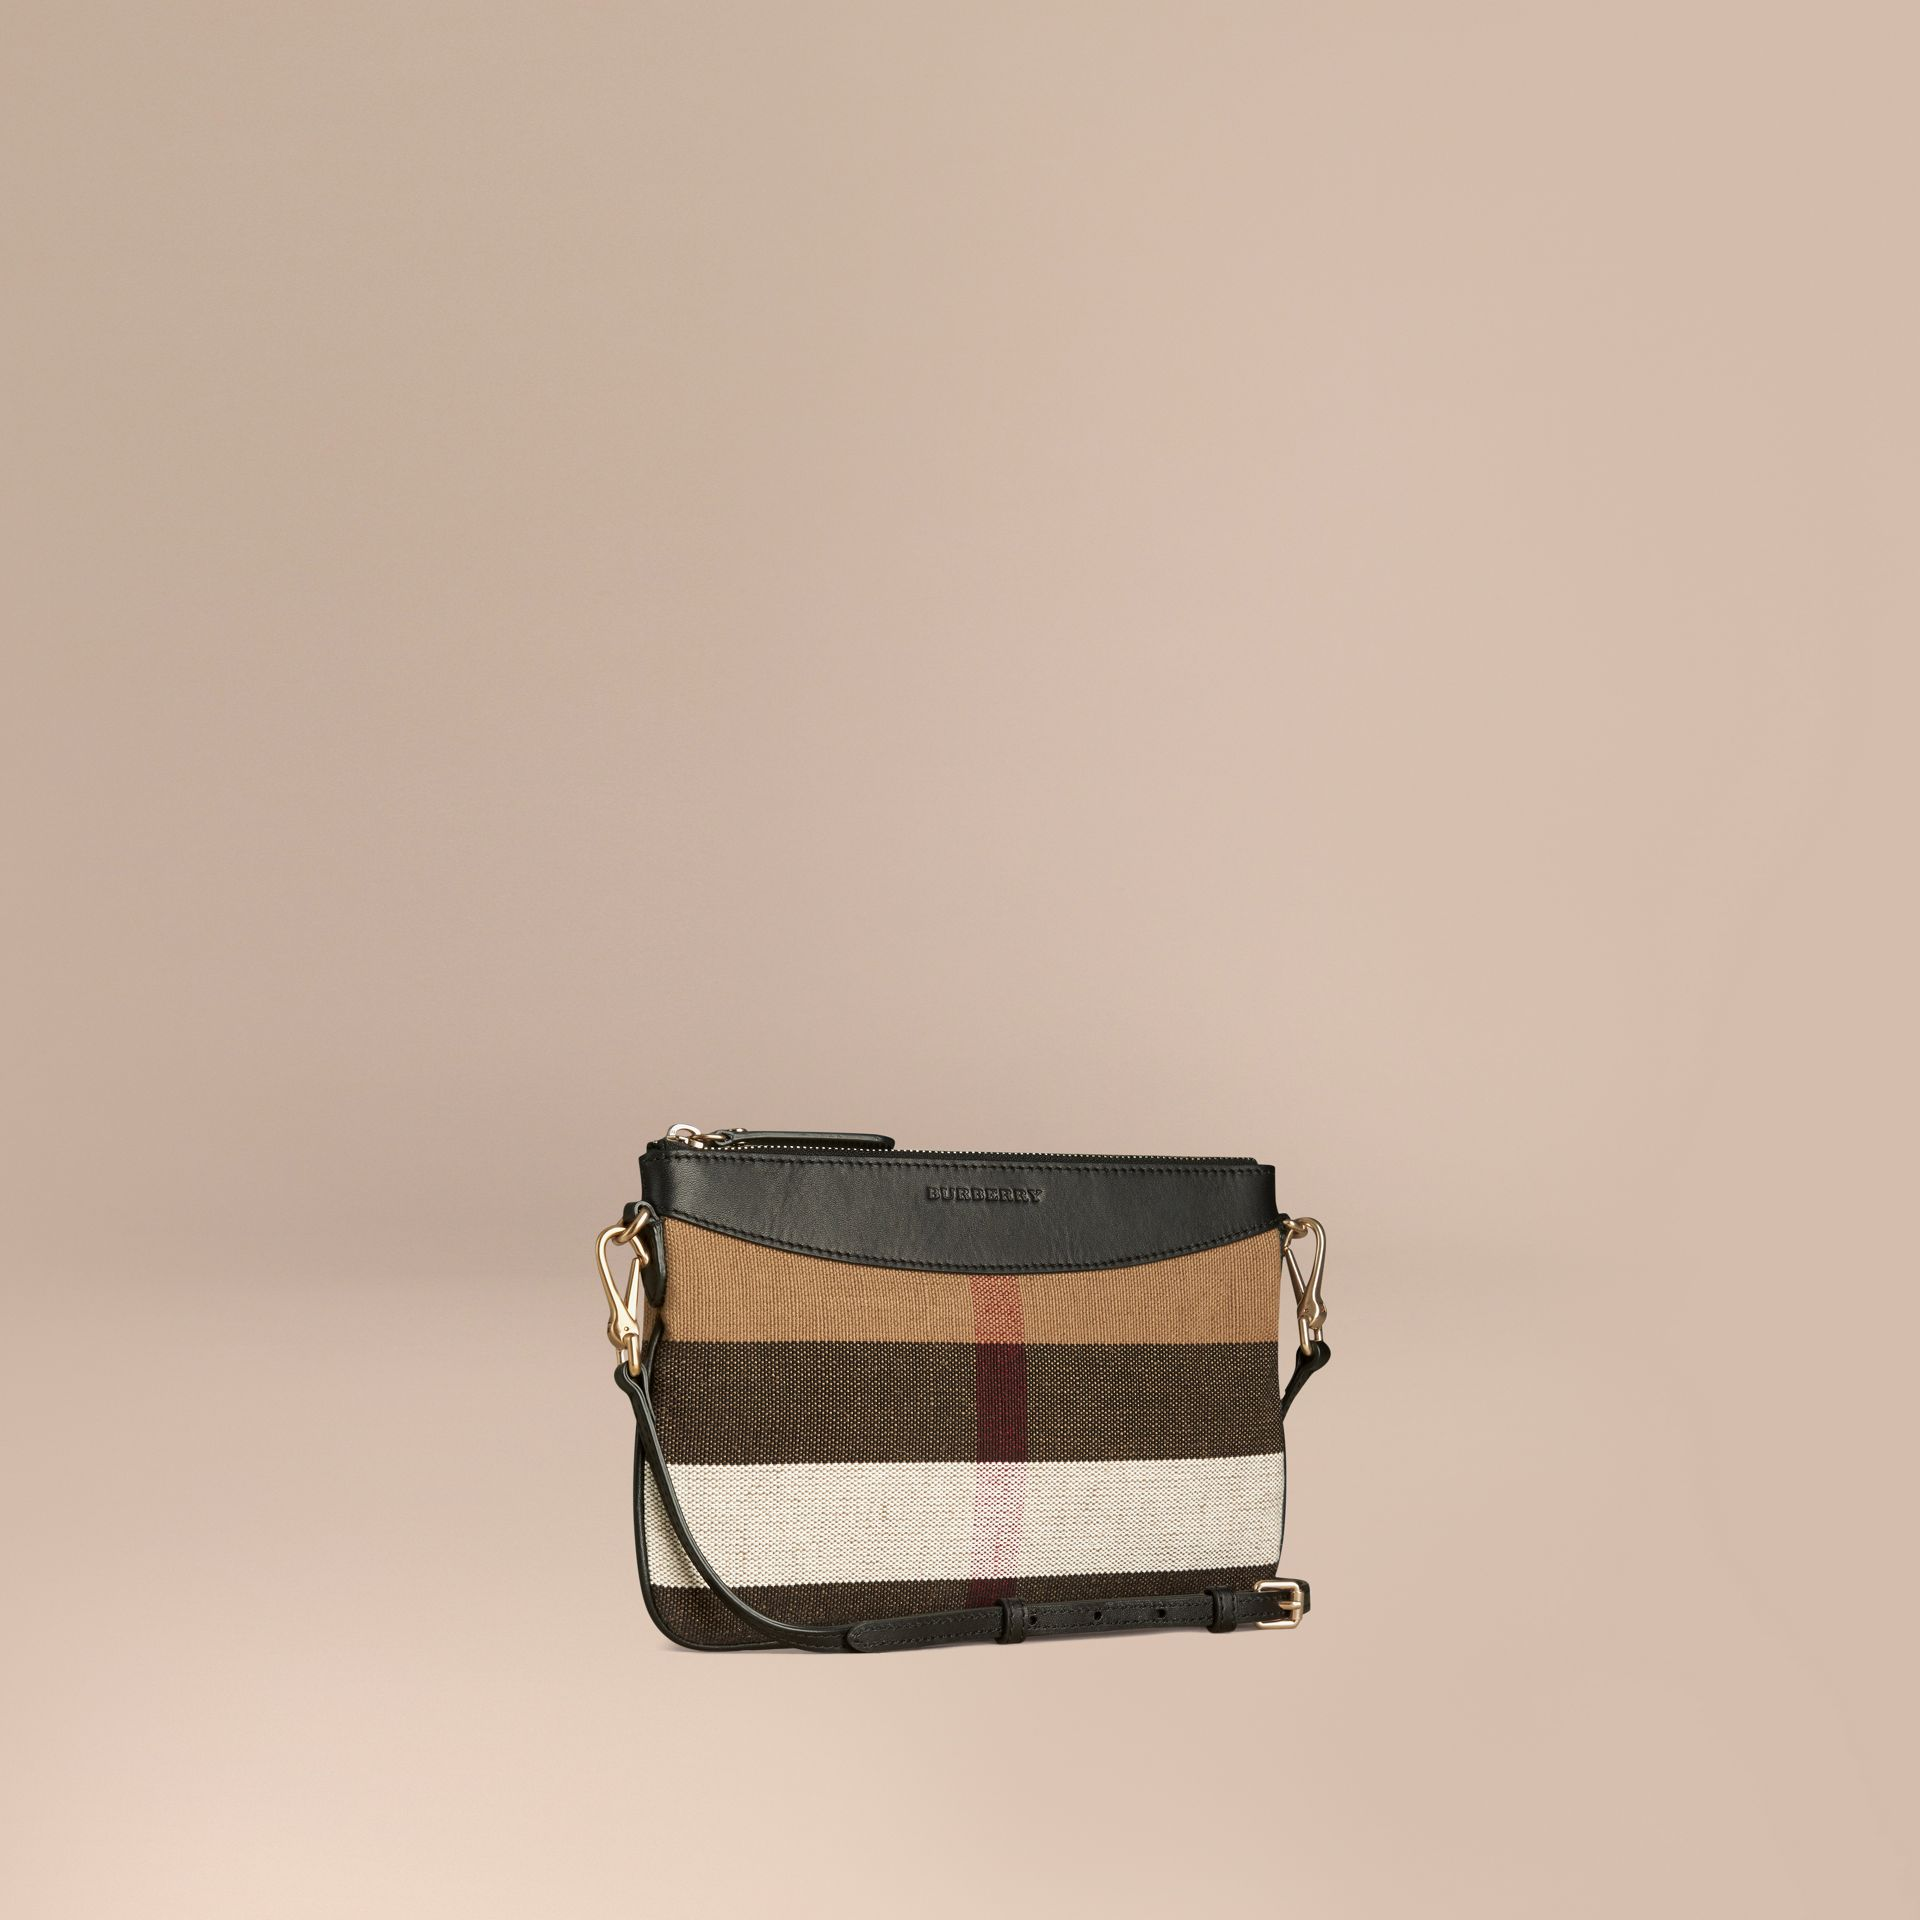 Black Canvas Check and Leather Clutch Bag Black - gallery image 1